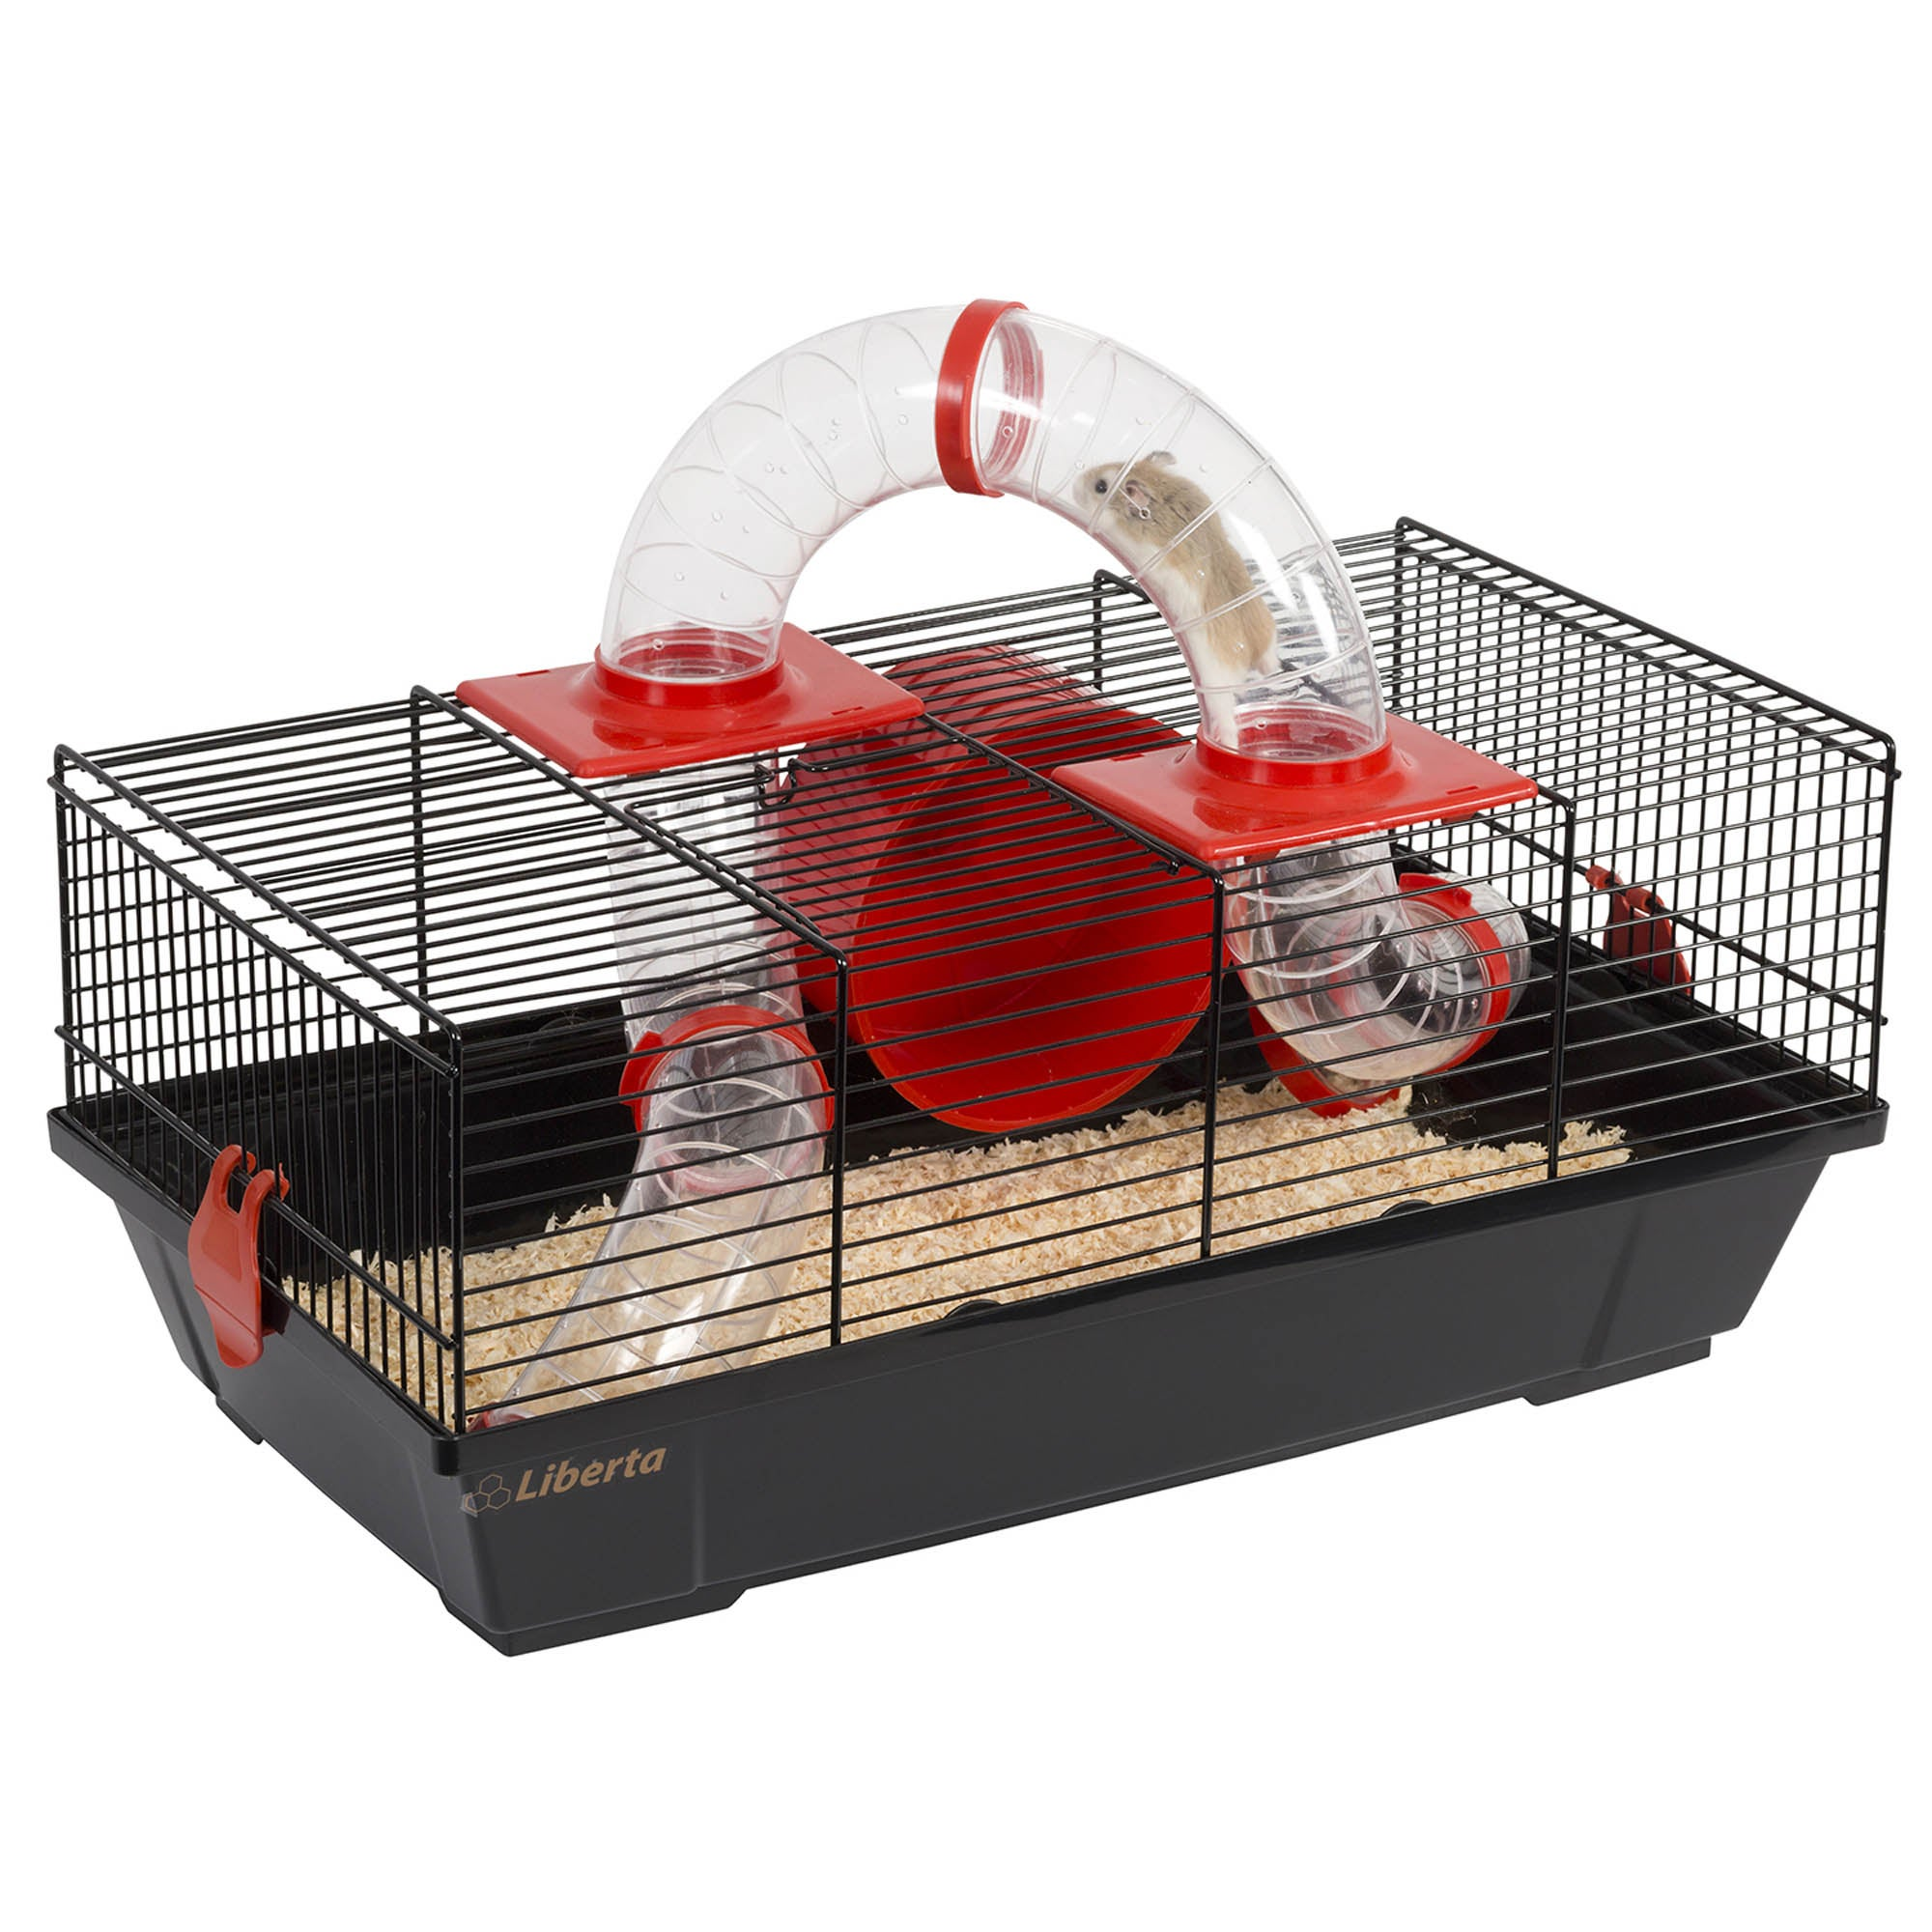 Orion 2 Hamster Cage Vermilion (Red)